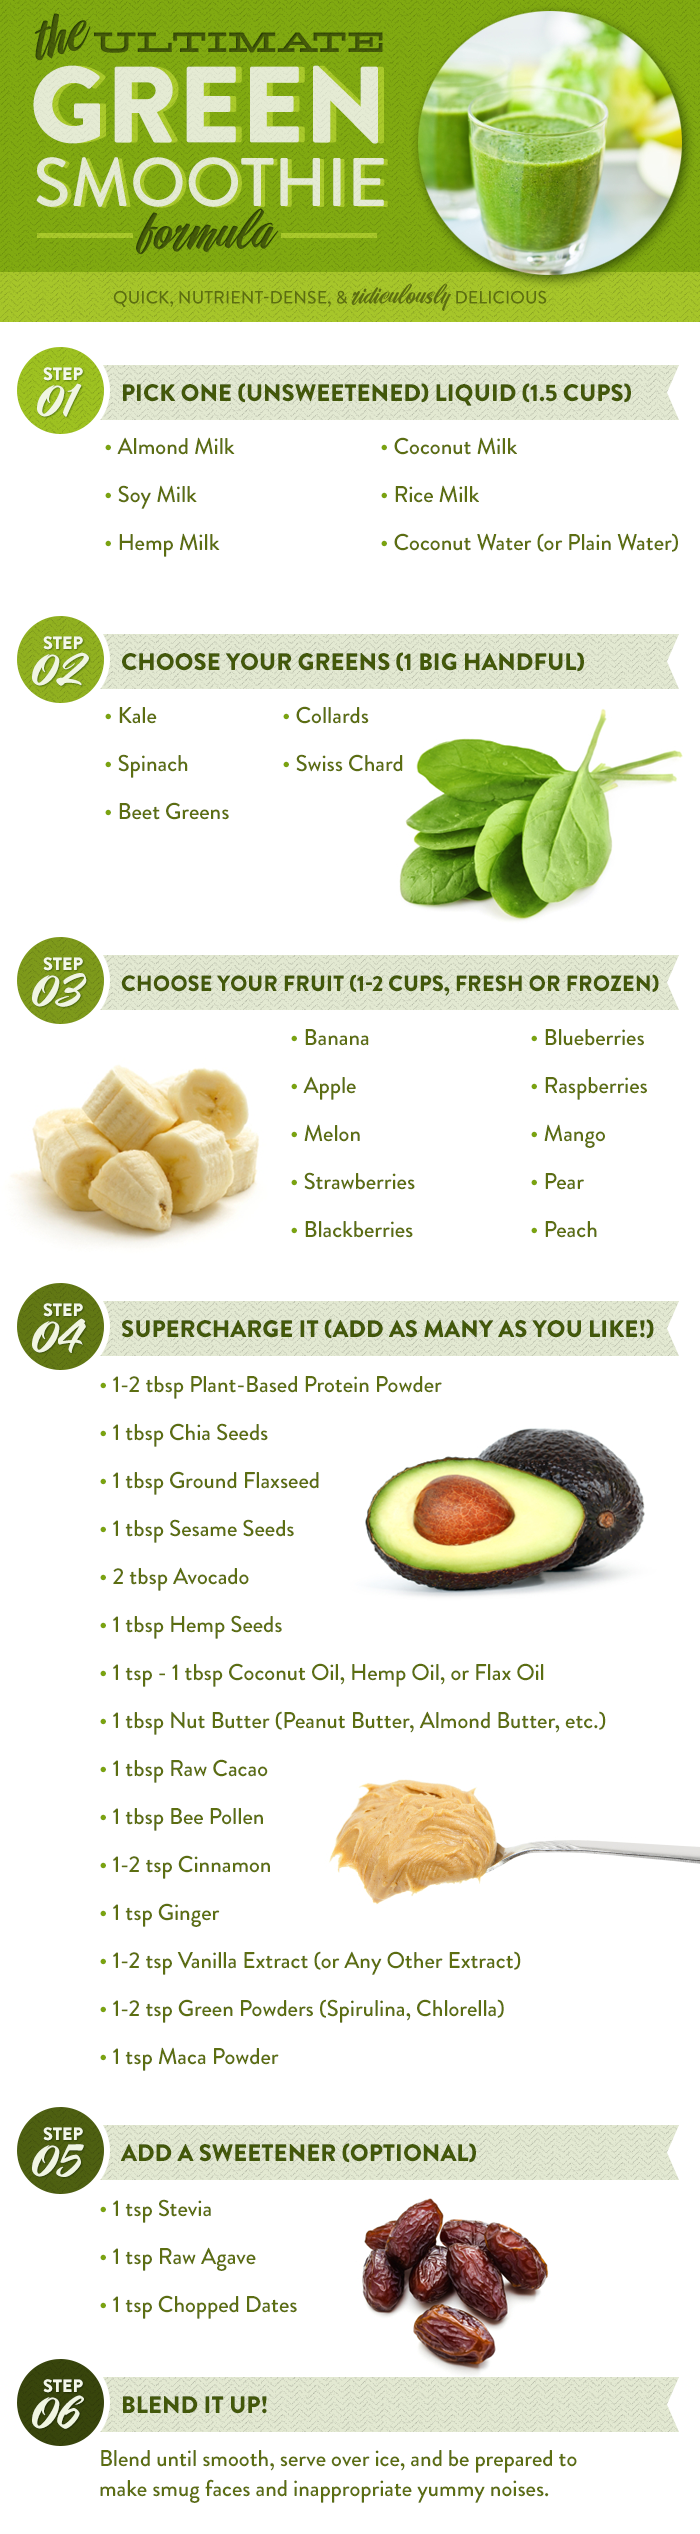 2014-04-11-guidelines-for-green-smoothie-consumption-optimal-health-benefits-infographic